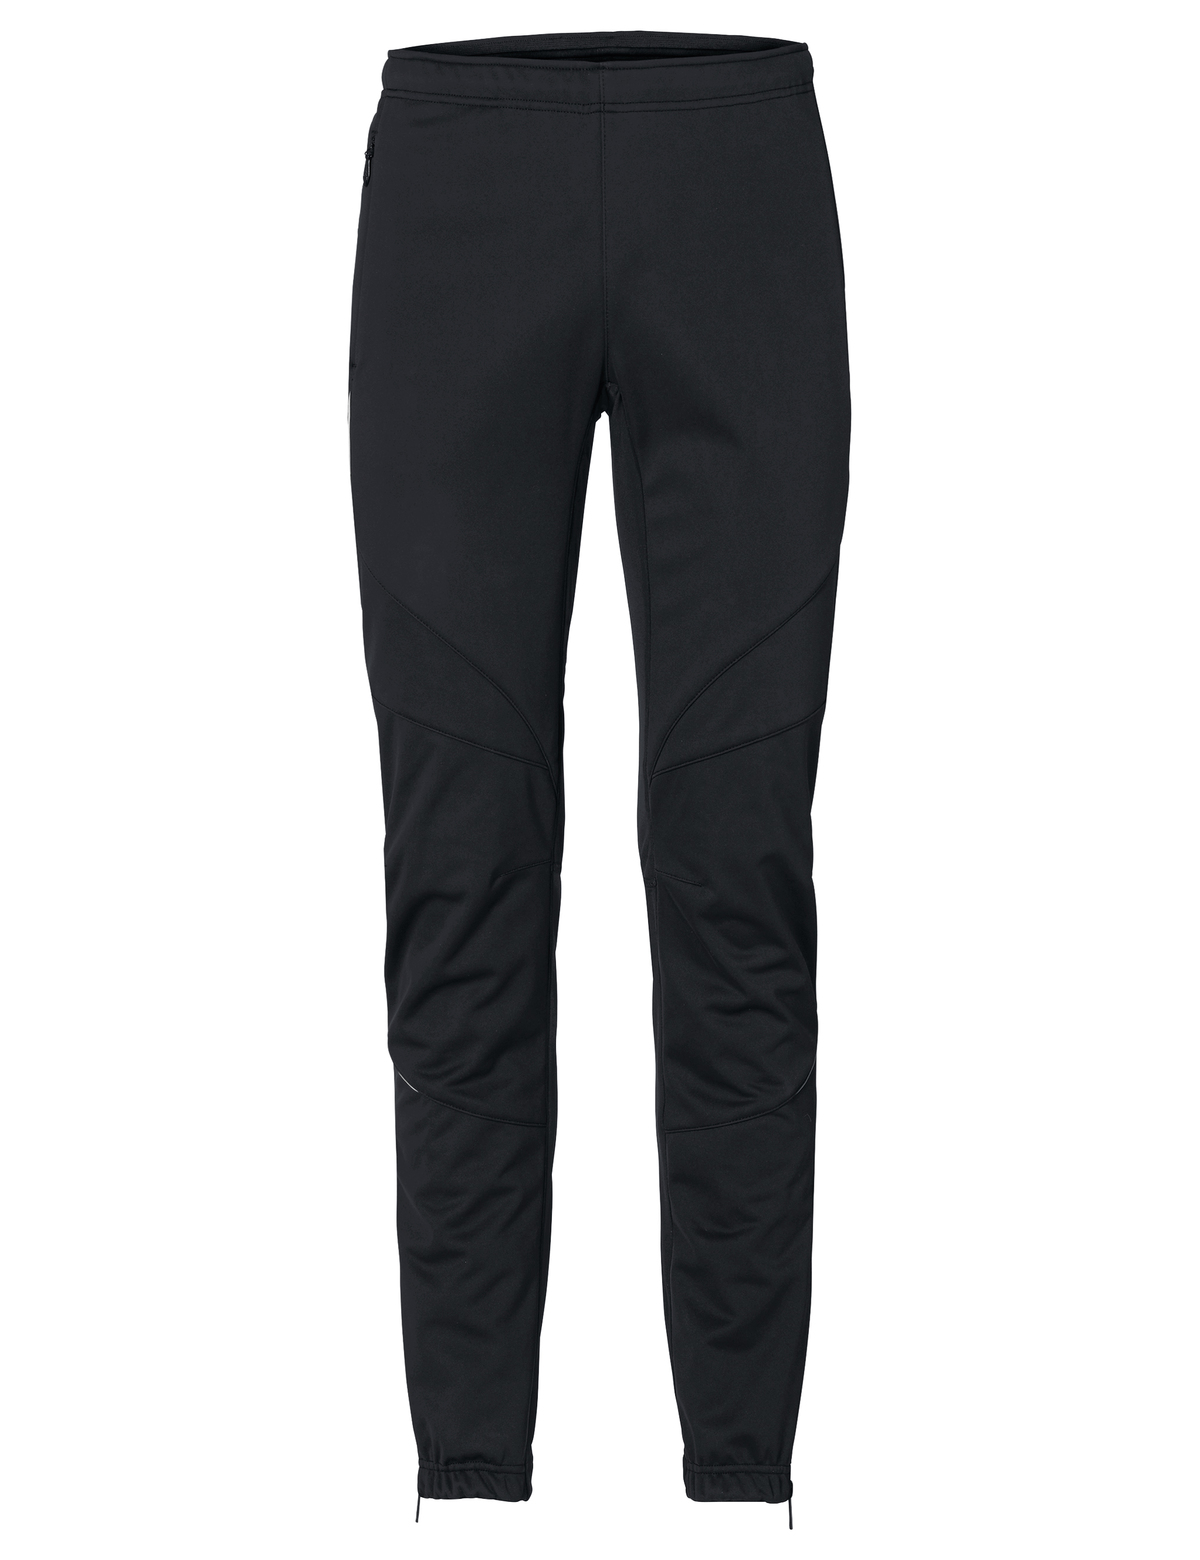 VAUDE Men´s Wintry Pants III black Größe S - schneider-sports